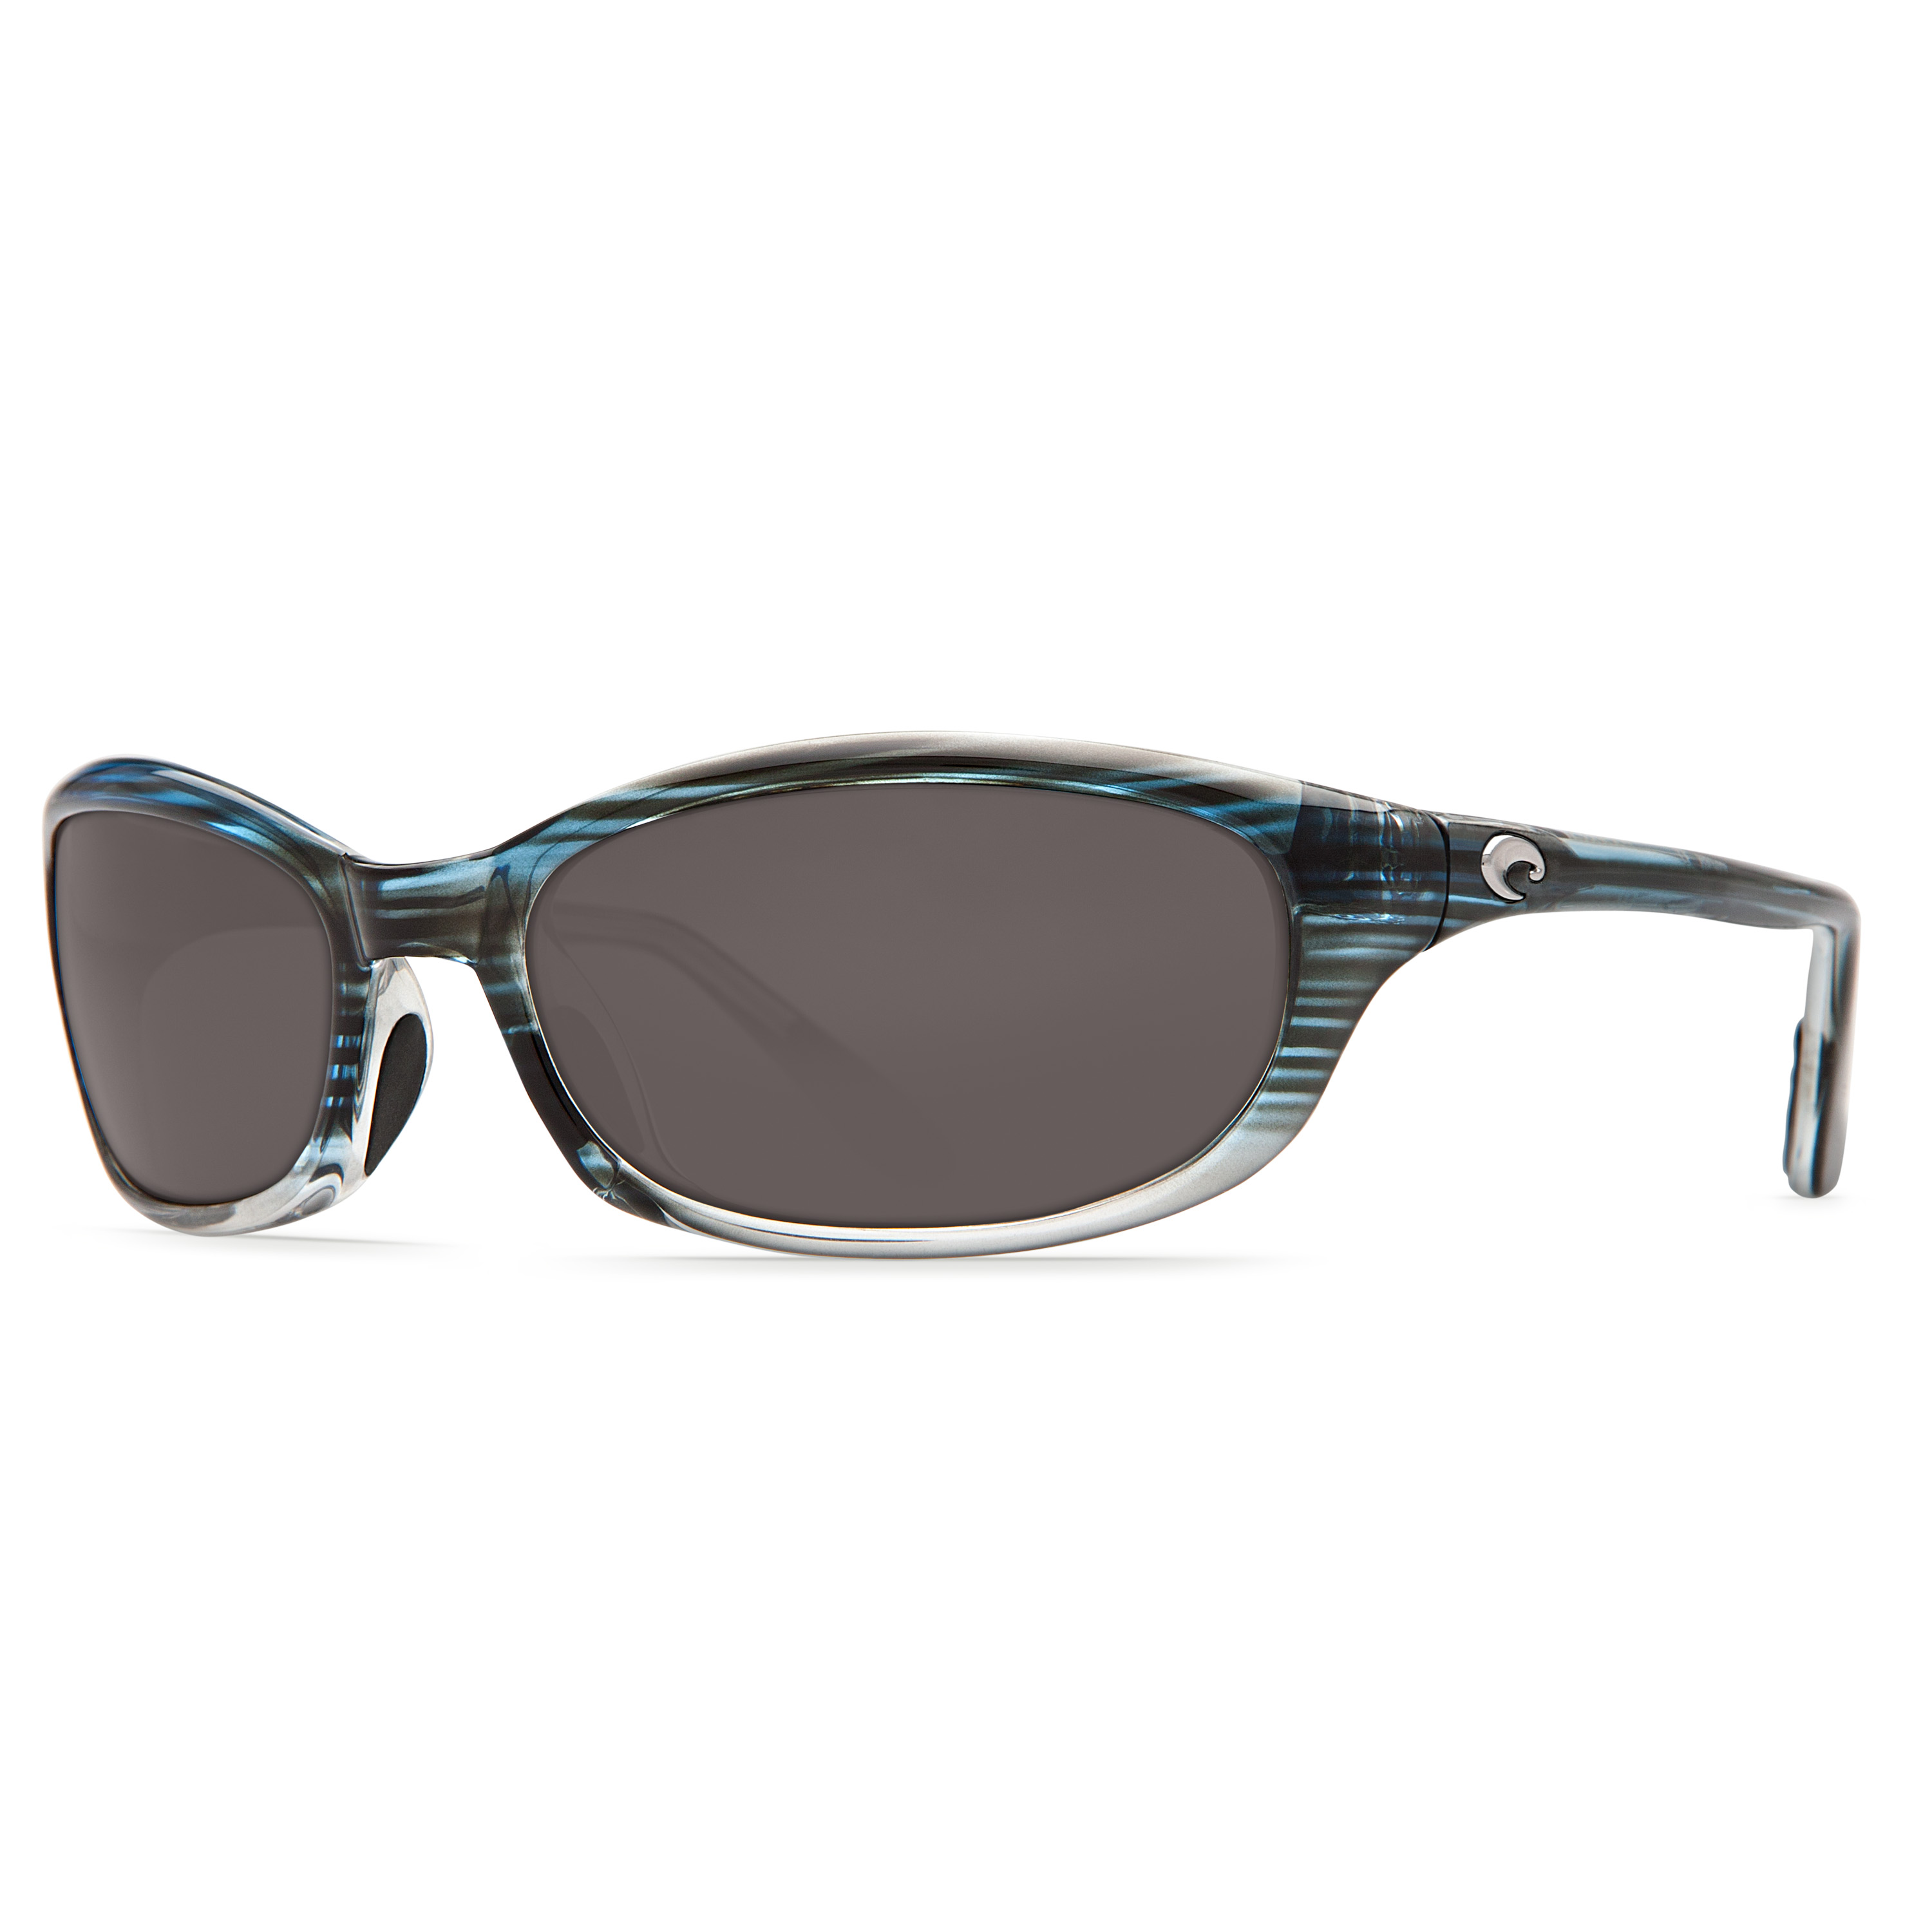 Best sunglasses for fishing the flats psychopraticienne for Best fishing glasses